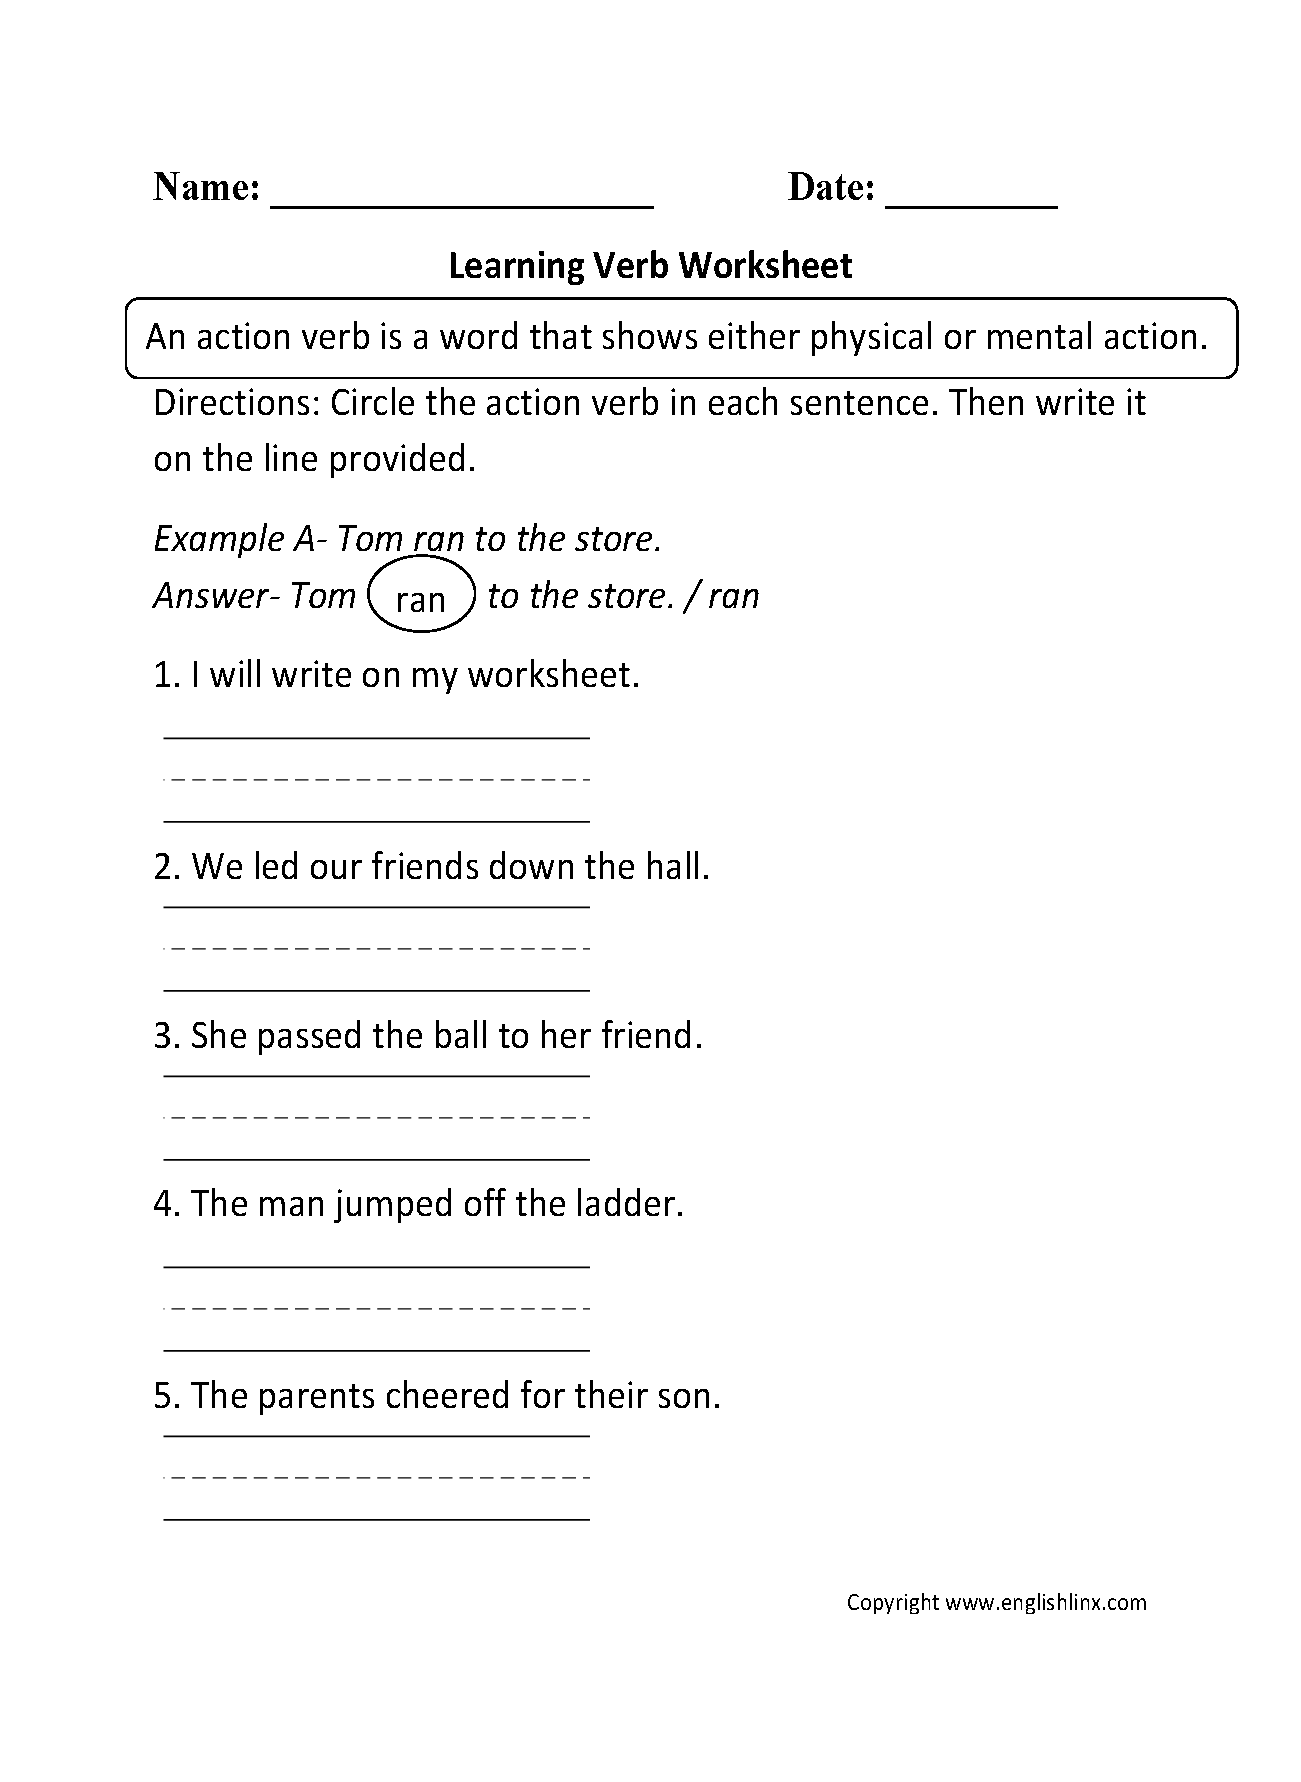 Learning Verb Worksheet